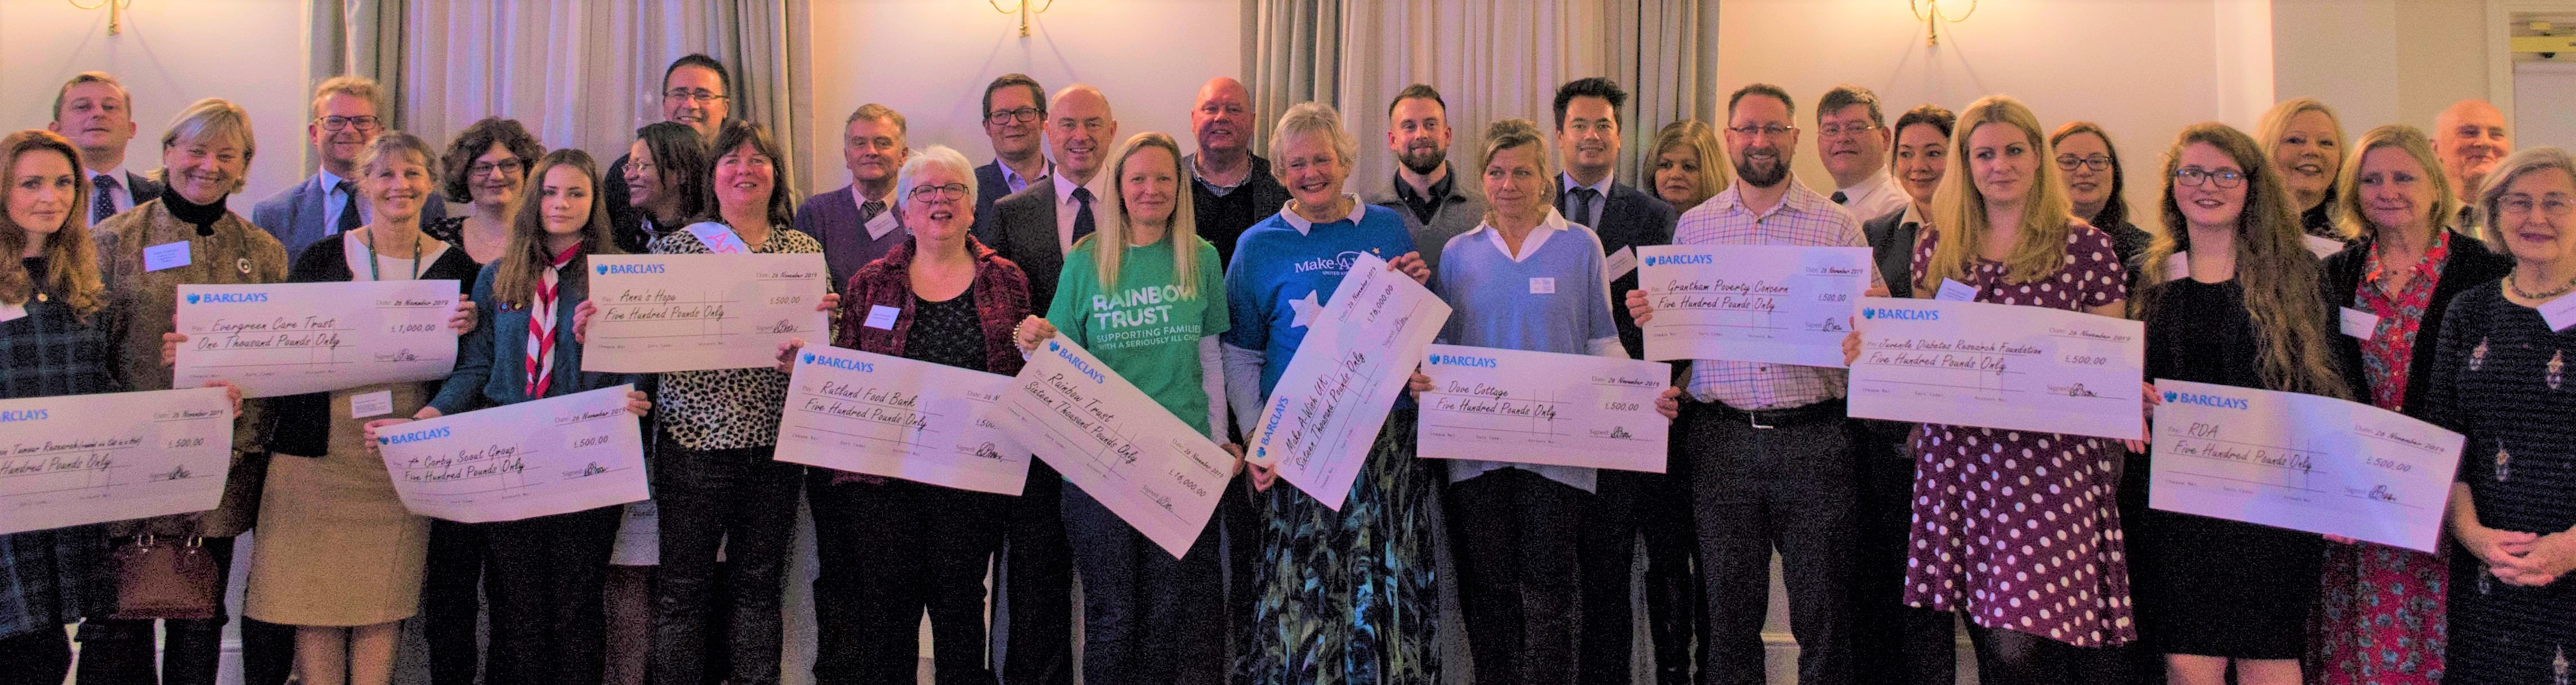 £40K ruby year fundraising cheques are handed over to 17 charities